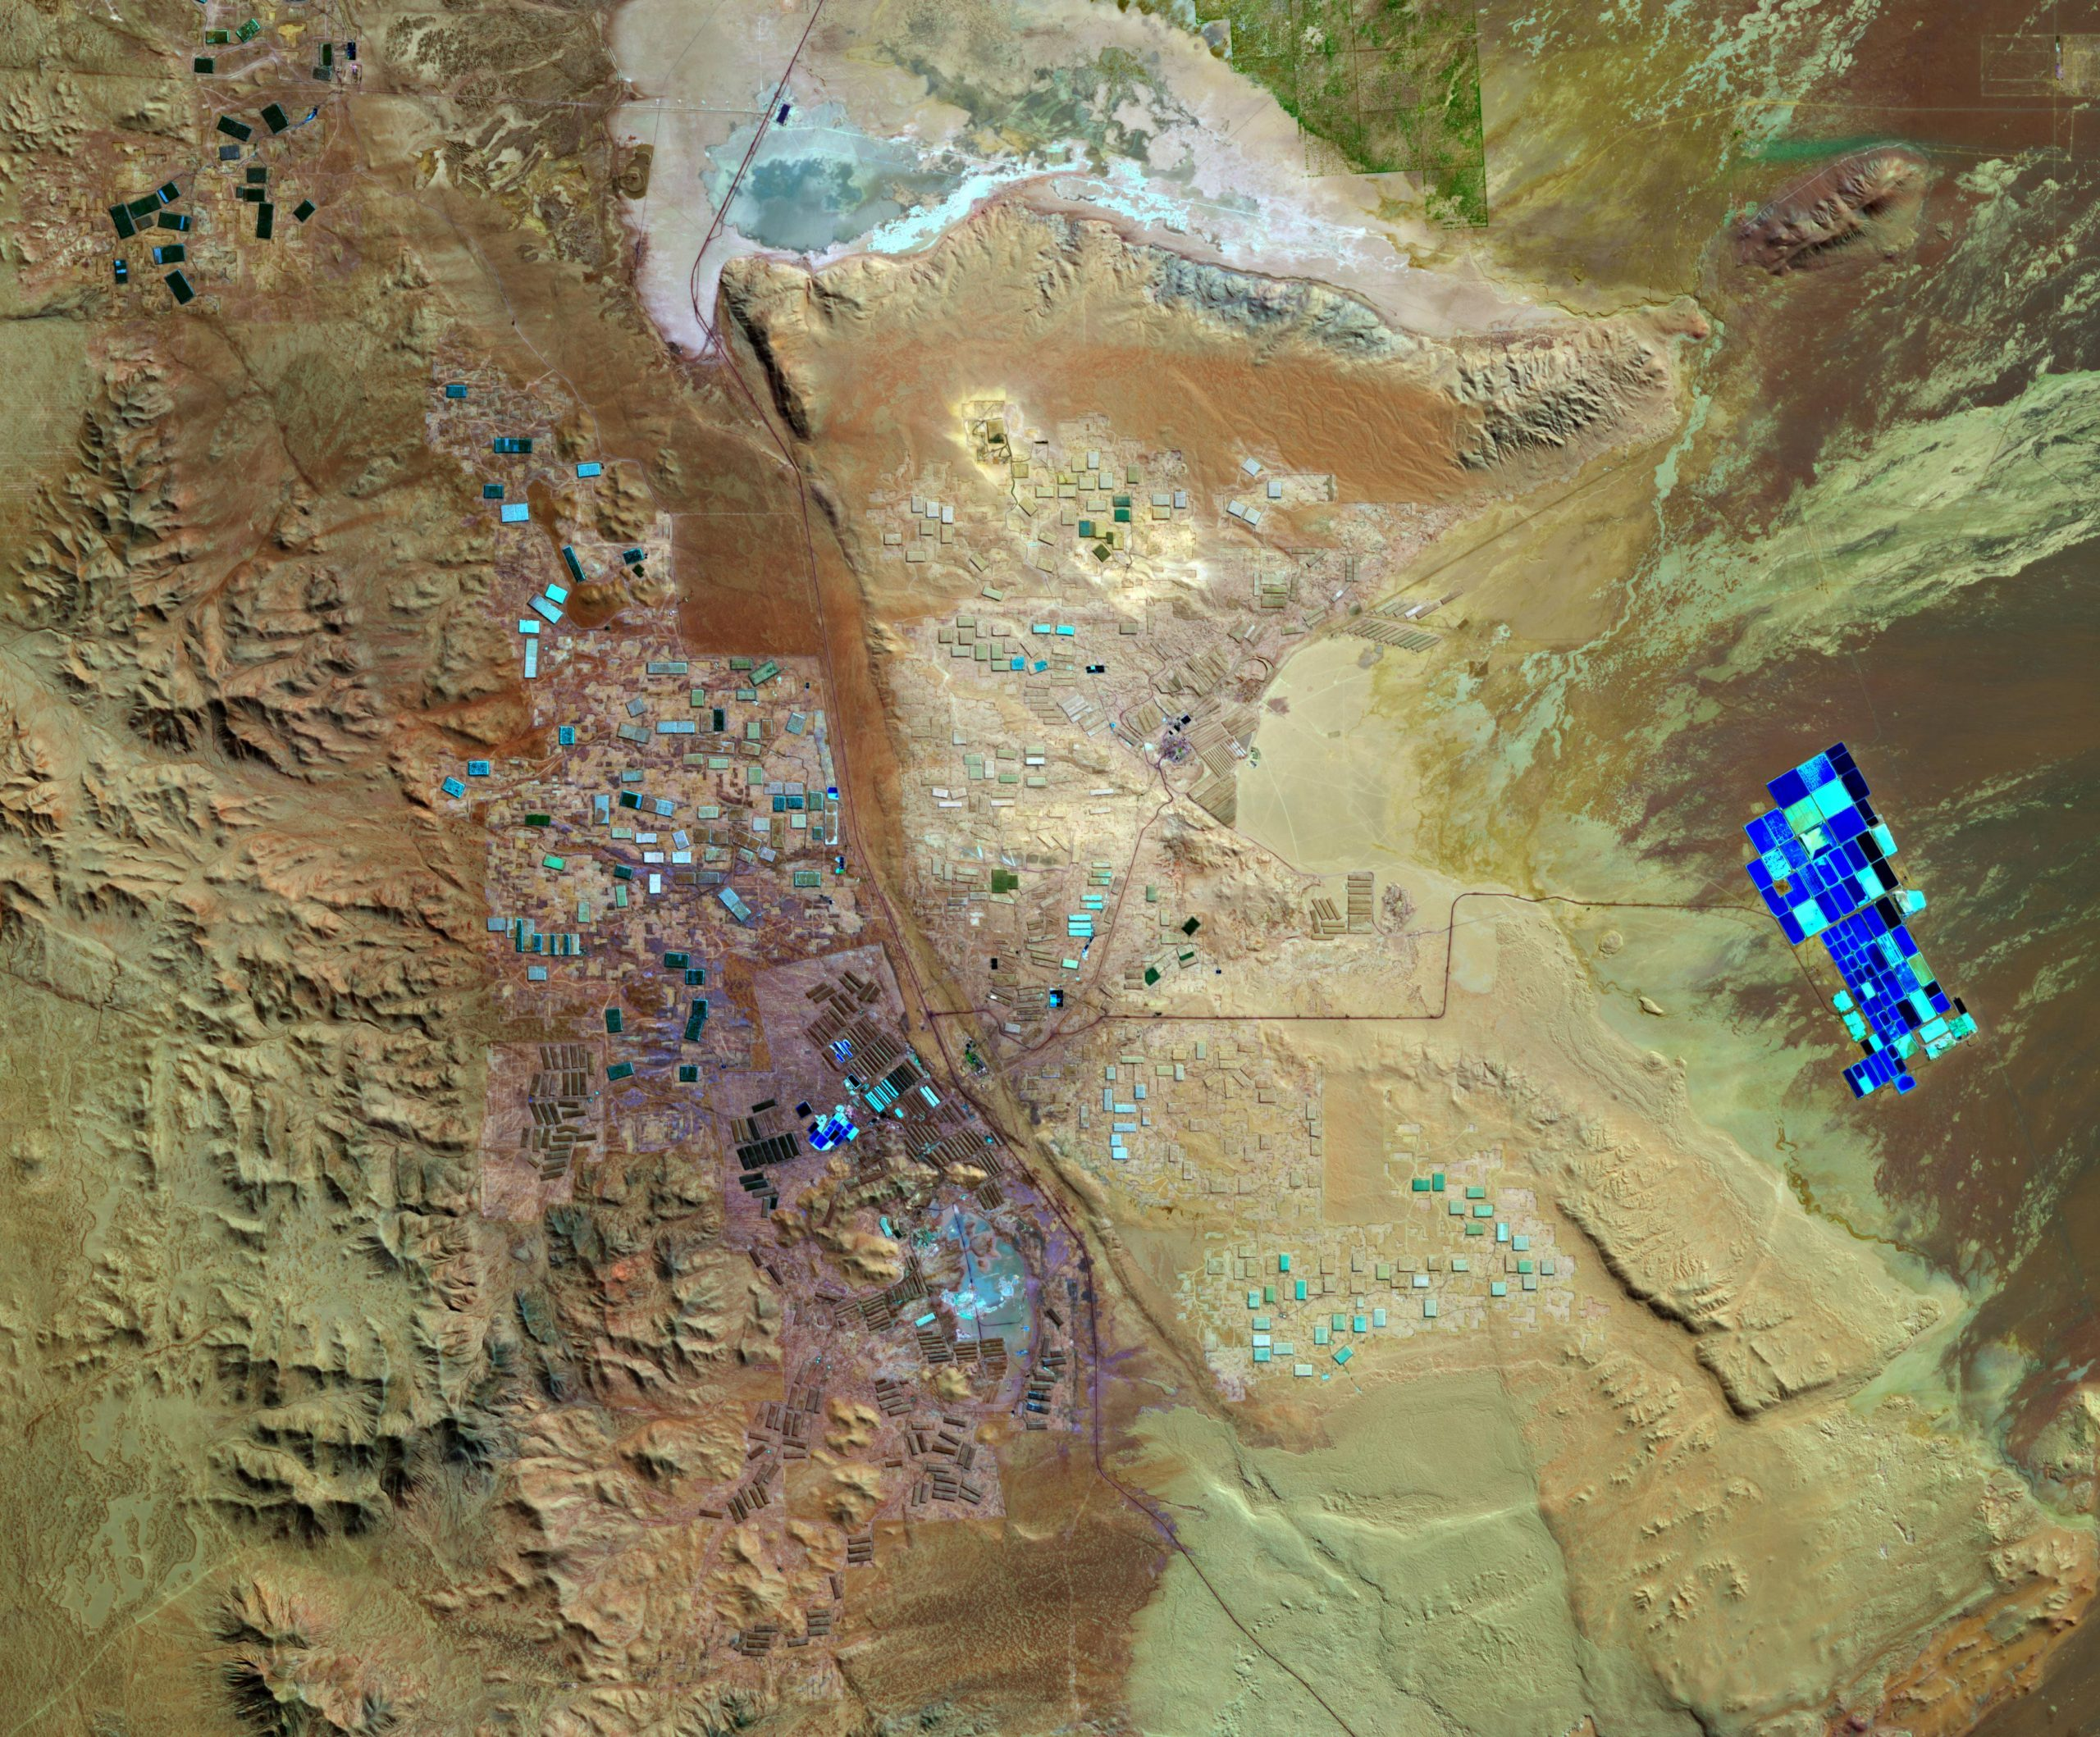 Vast Mineral Deposits in the Atacama Desert Seen From Space - SciTechDaily